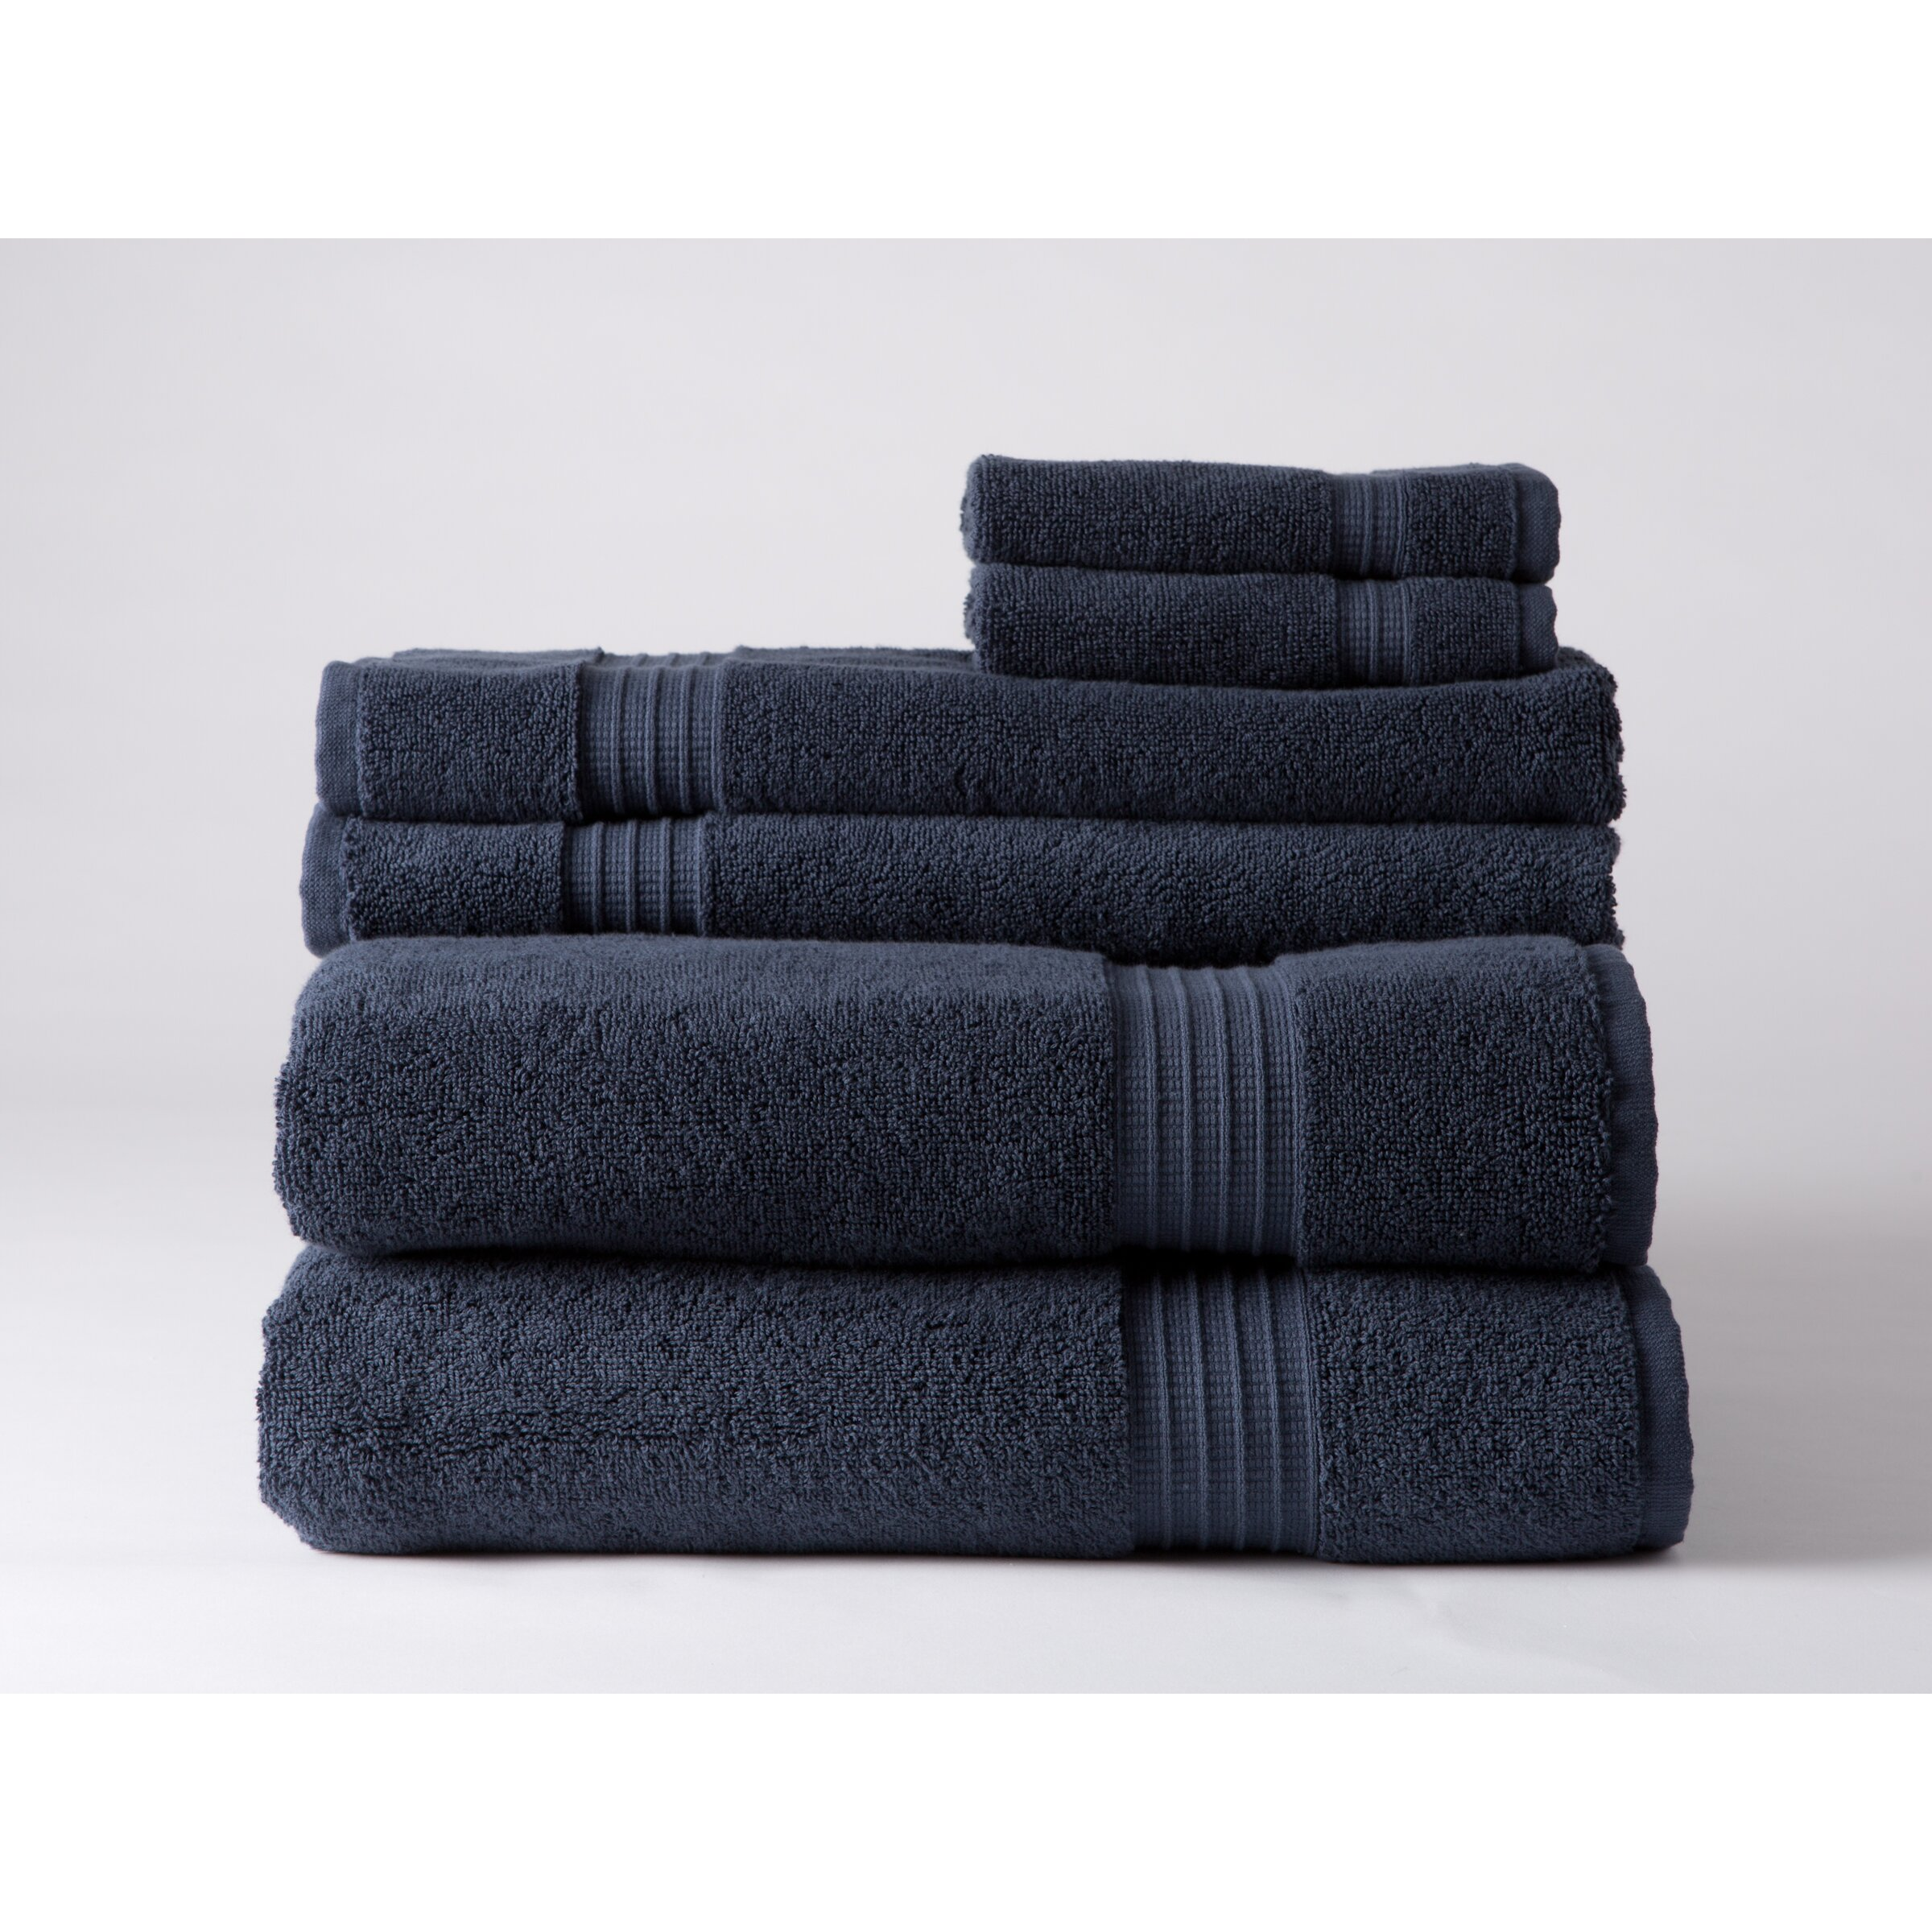 Home Source International Luxury 6 Piece Towel Set